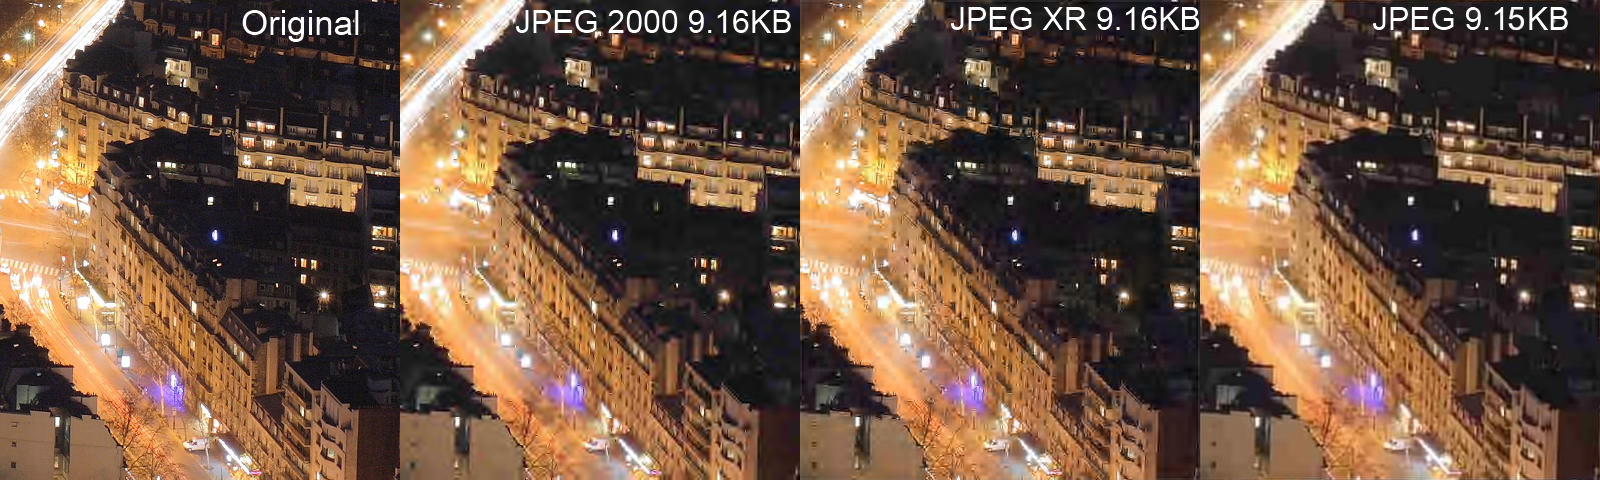 convert images to jpeg xr